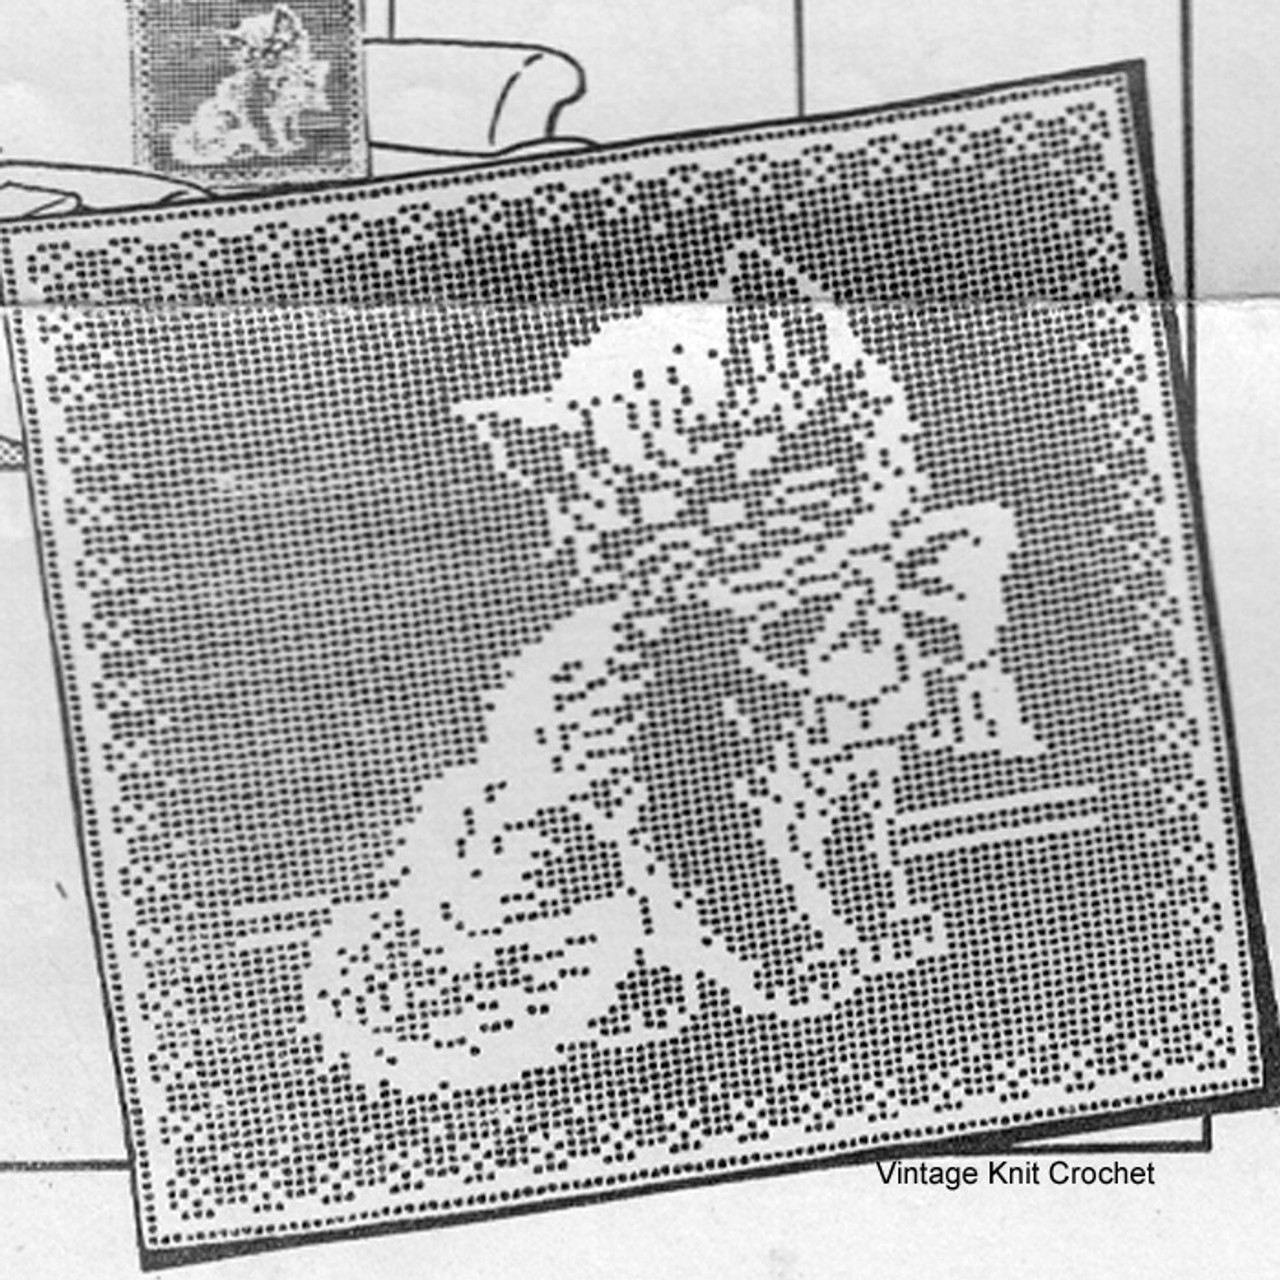 Mail Order 1766, Filet Crochet Kitten Pillow Pattern